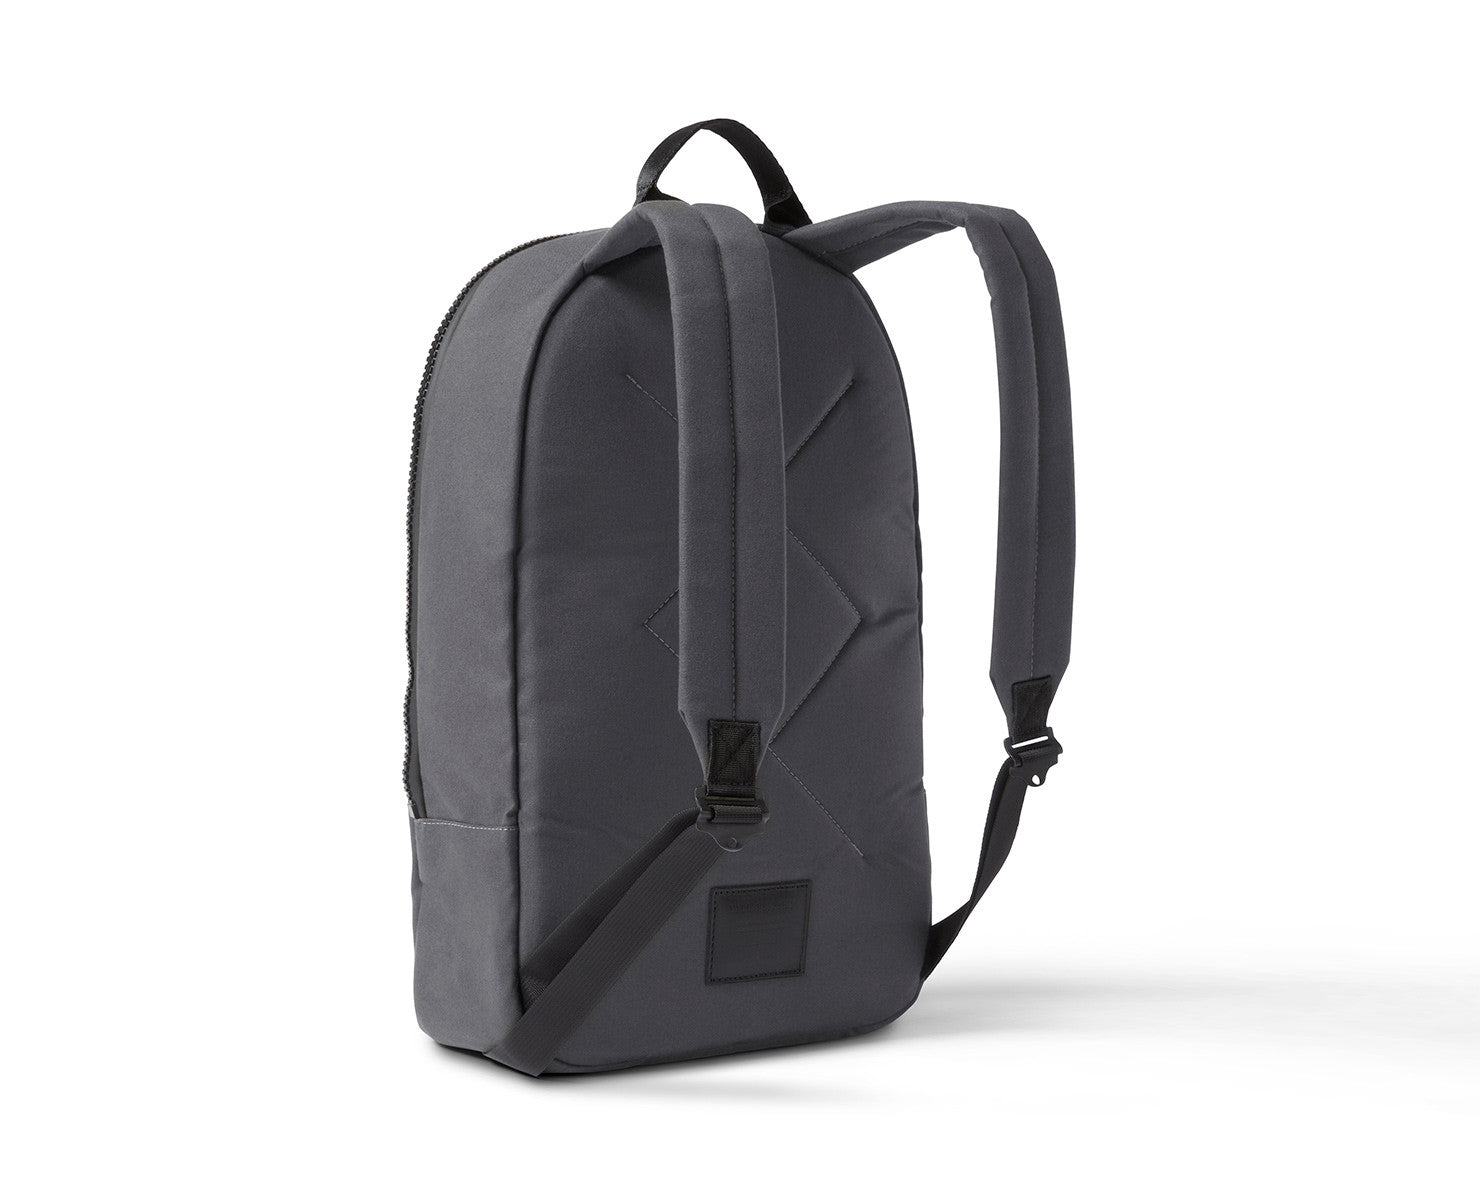 SPECIAL OPS BACKPACK 3.0 | KILLSPENCER® - Charcoal Grey Canvas